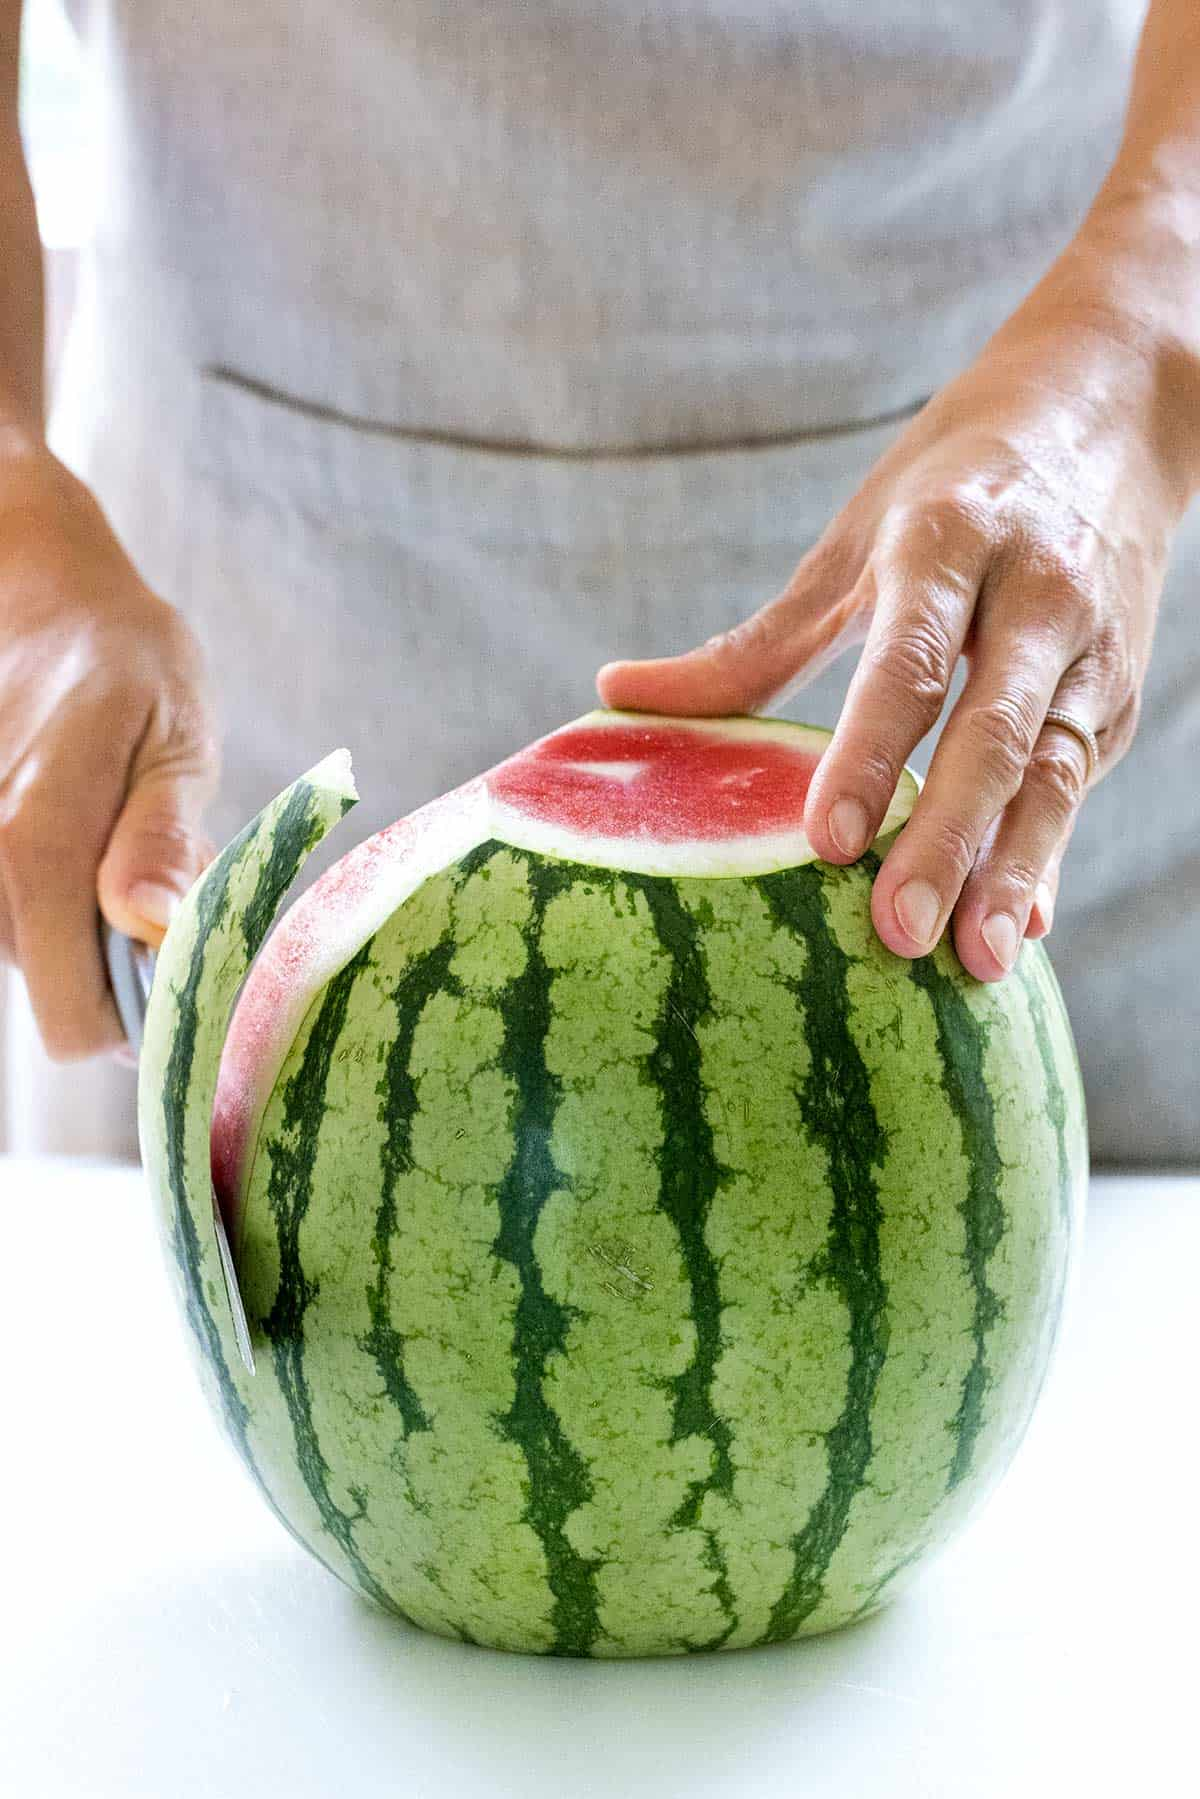 cutting the rind off a watermelon